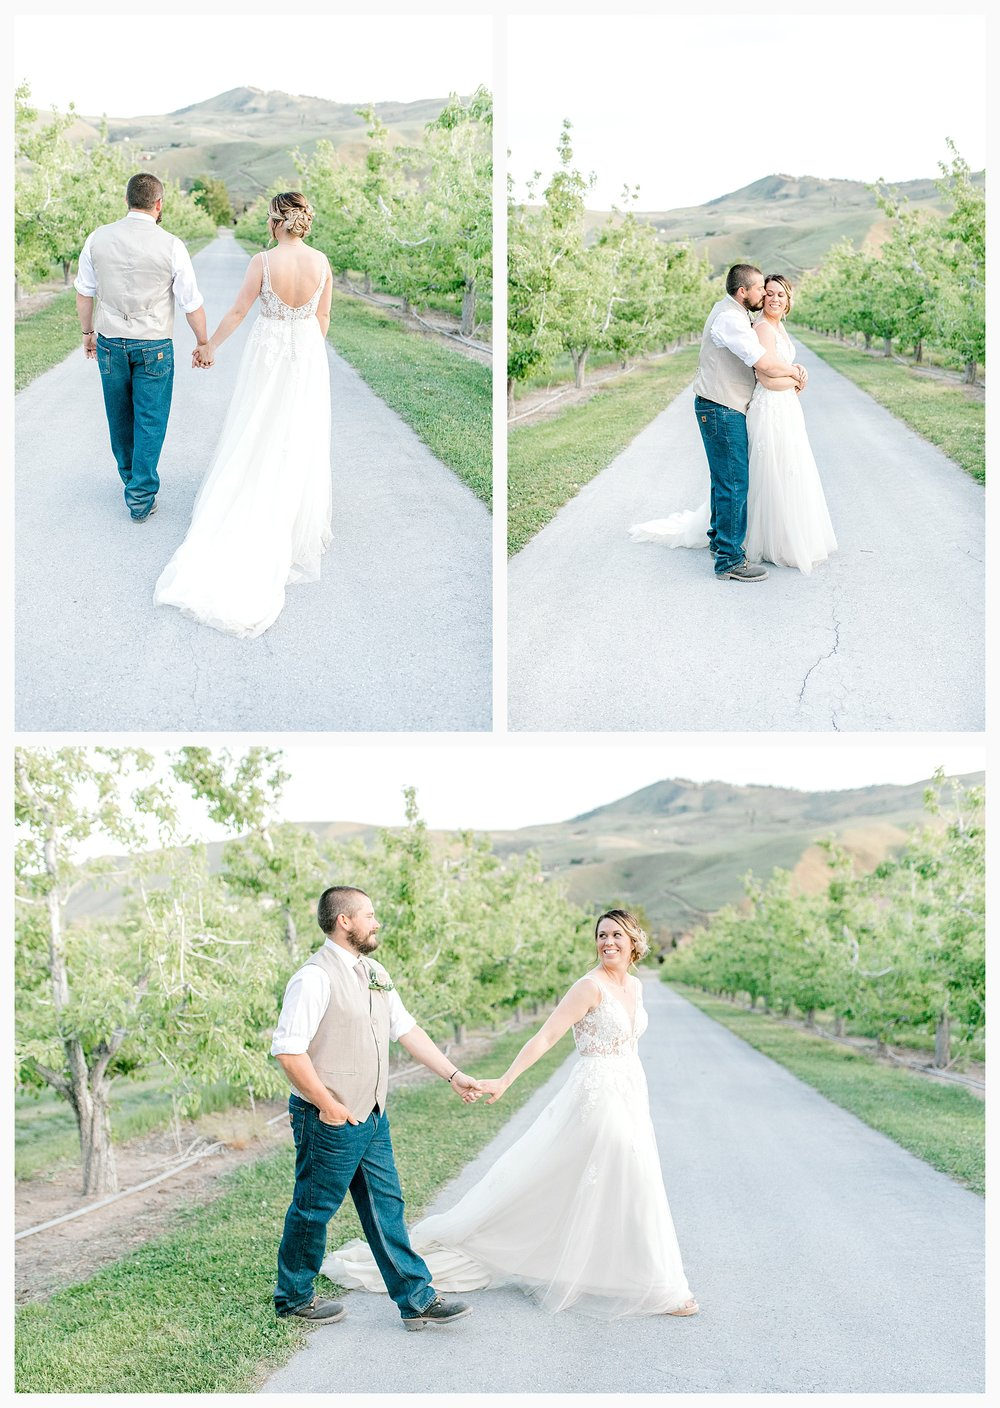 Rustic barn wedding in Wenatchee Washington at Sunshine Ranch on Easy Street, Emma Rose Company Seattle PNW Light and Airy Wedding Photographer_0137.jpg